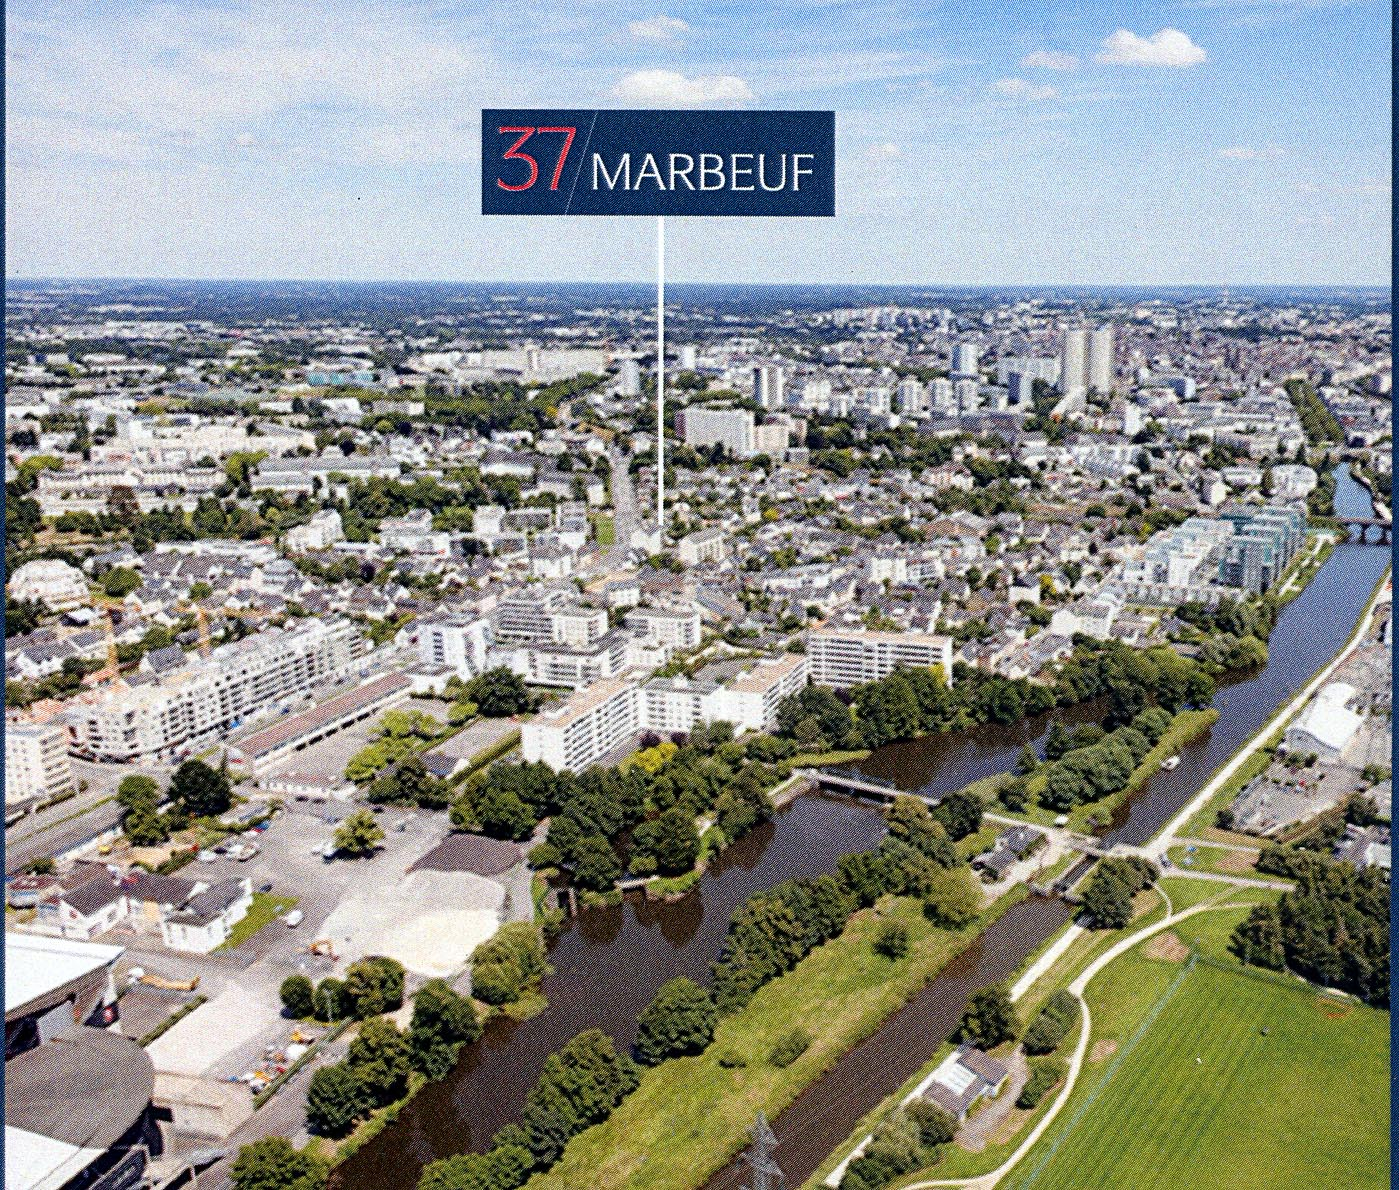 Le 37 Marbeuf - Photo 2